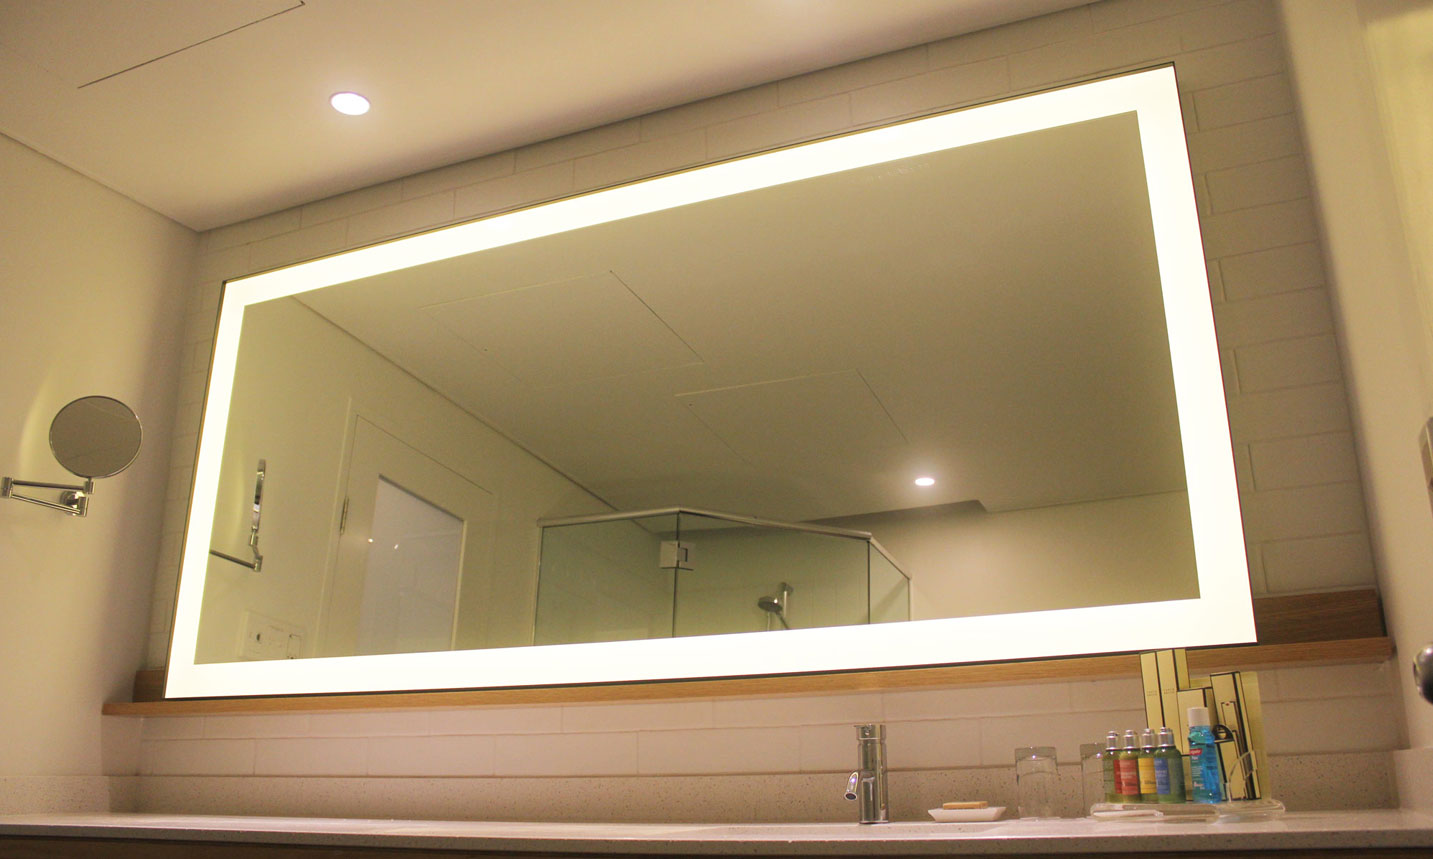 Edge metal frame lighted mirror